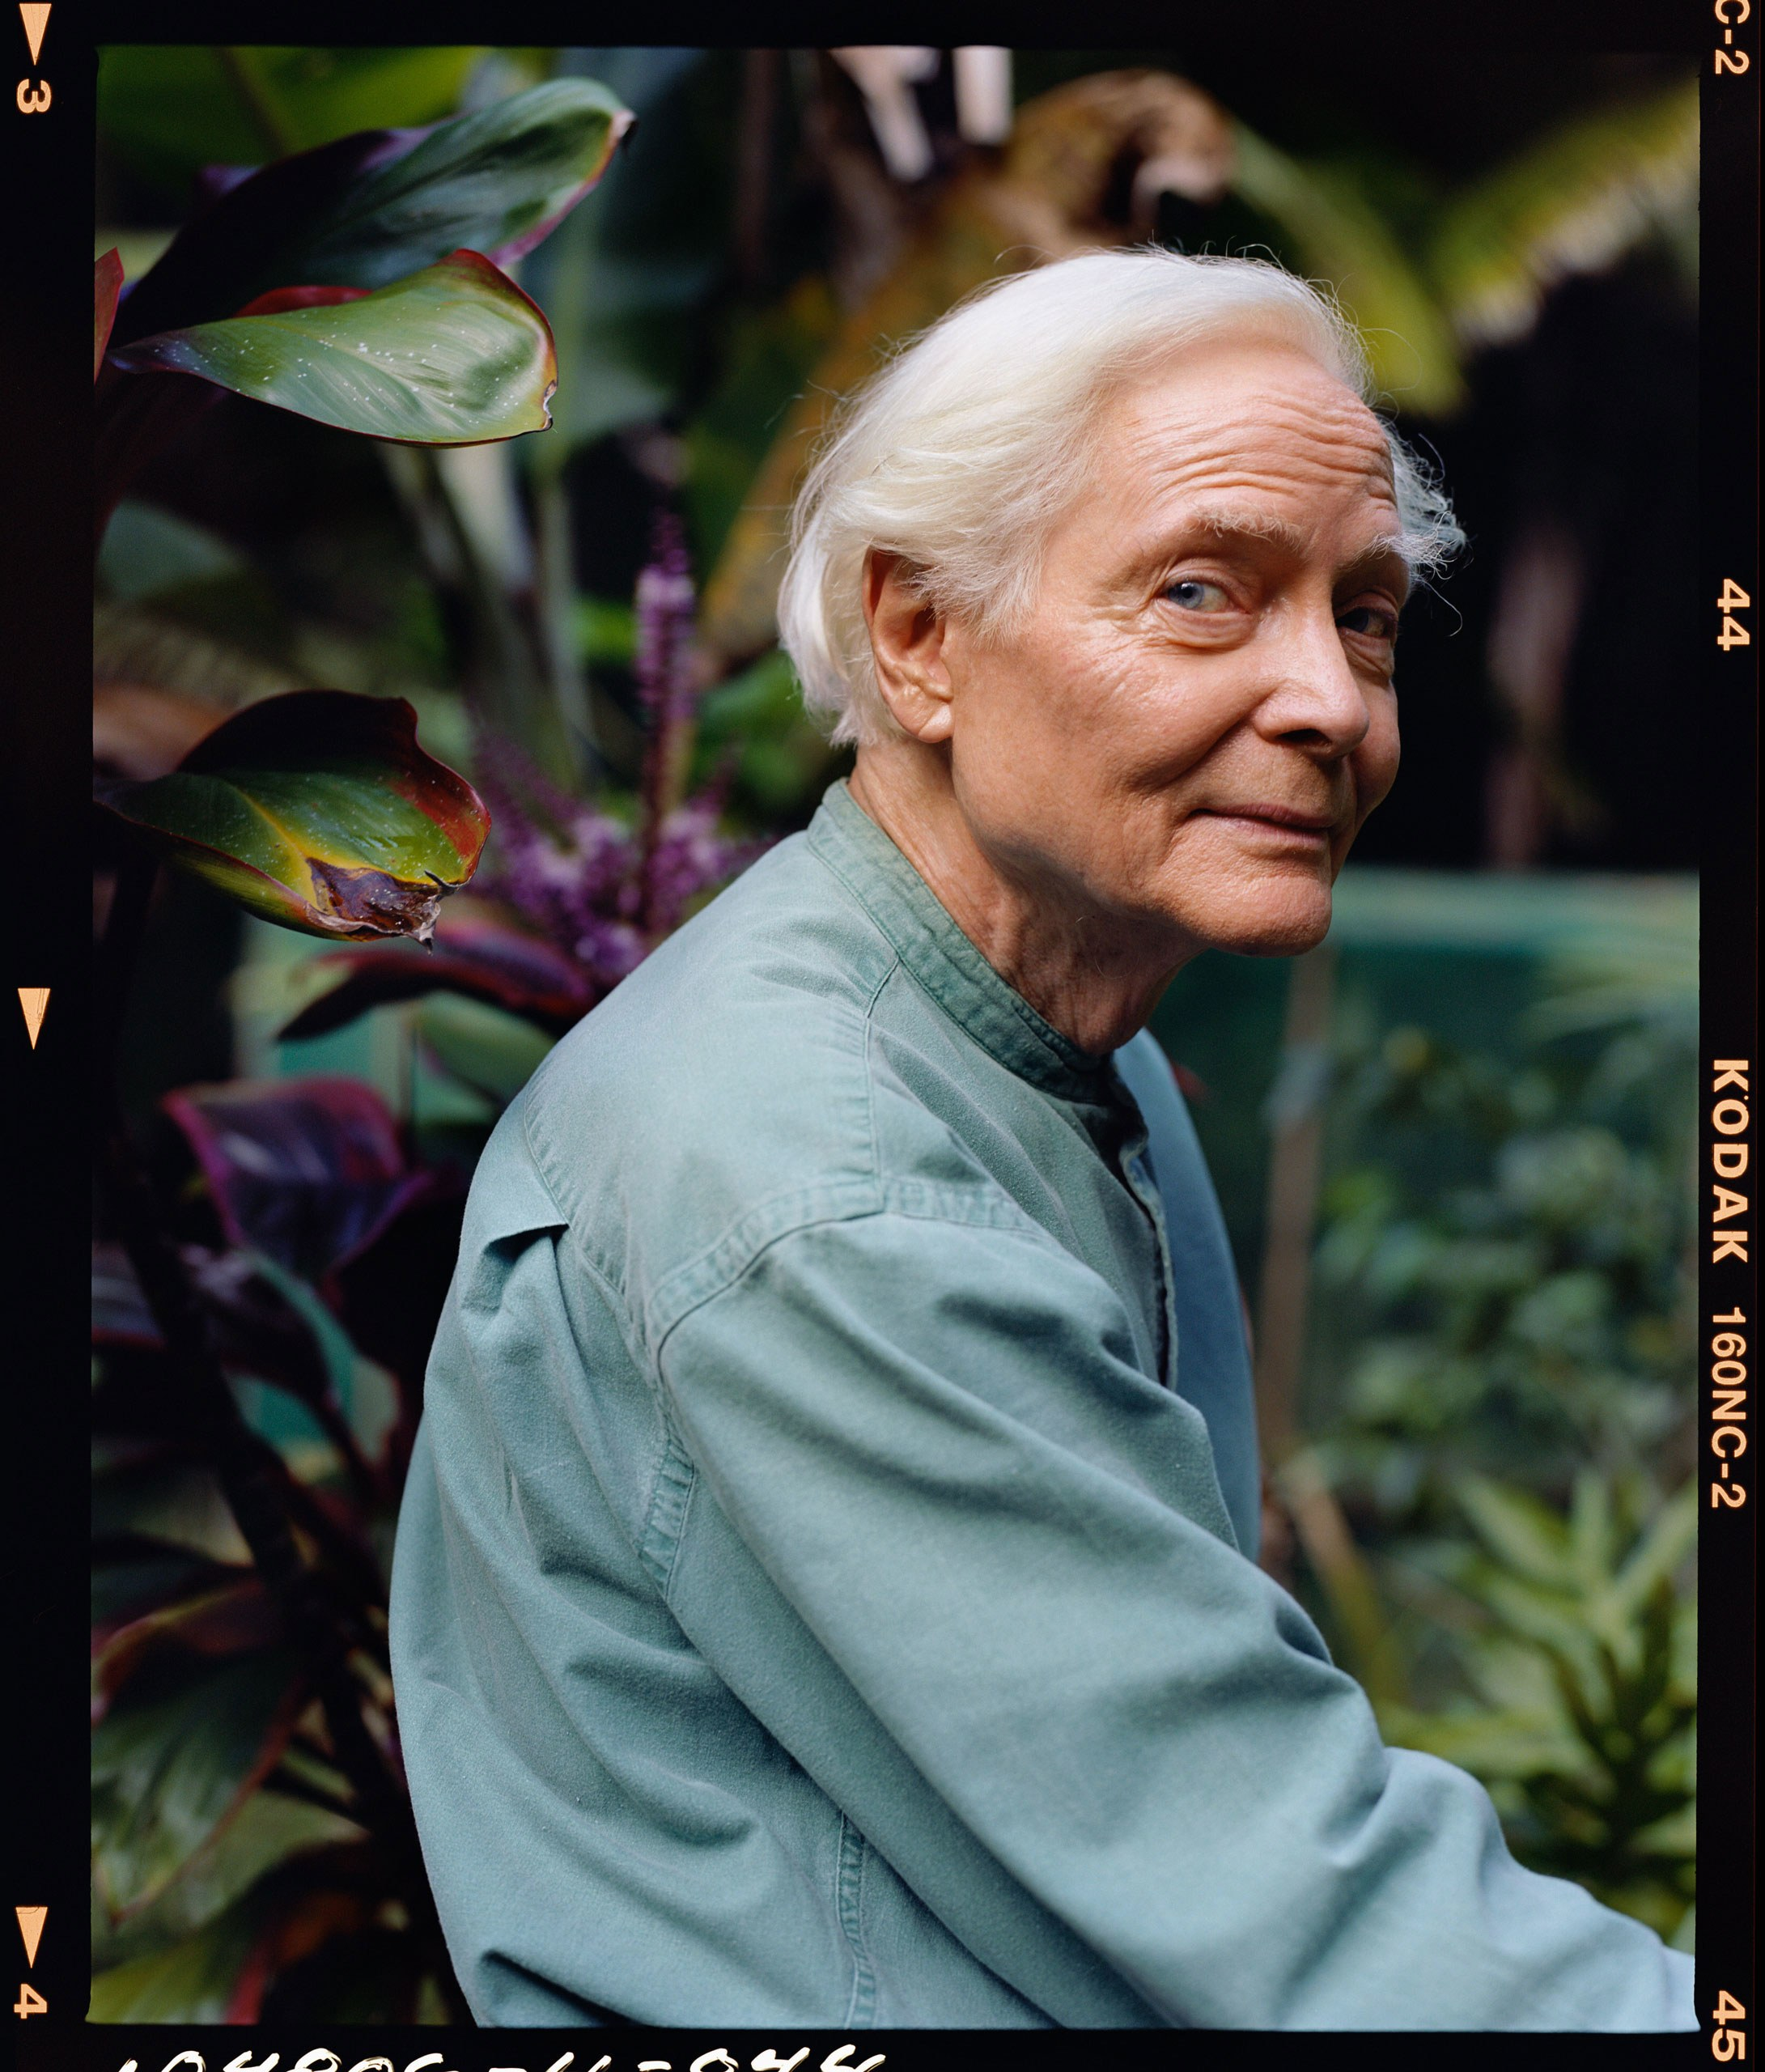 W.S. MERWIN DISCOVERED